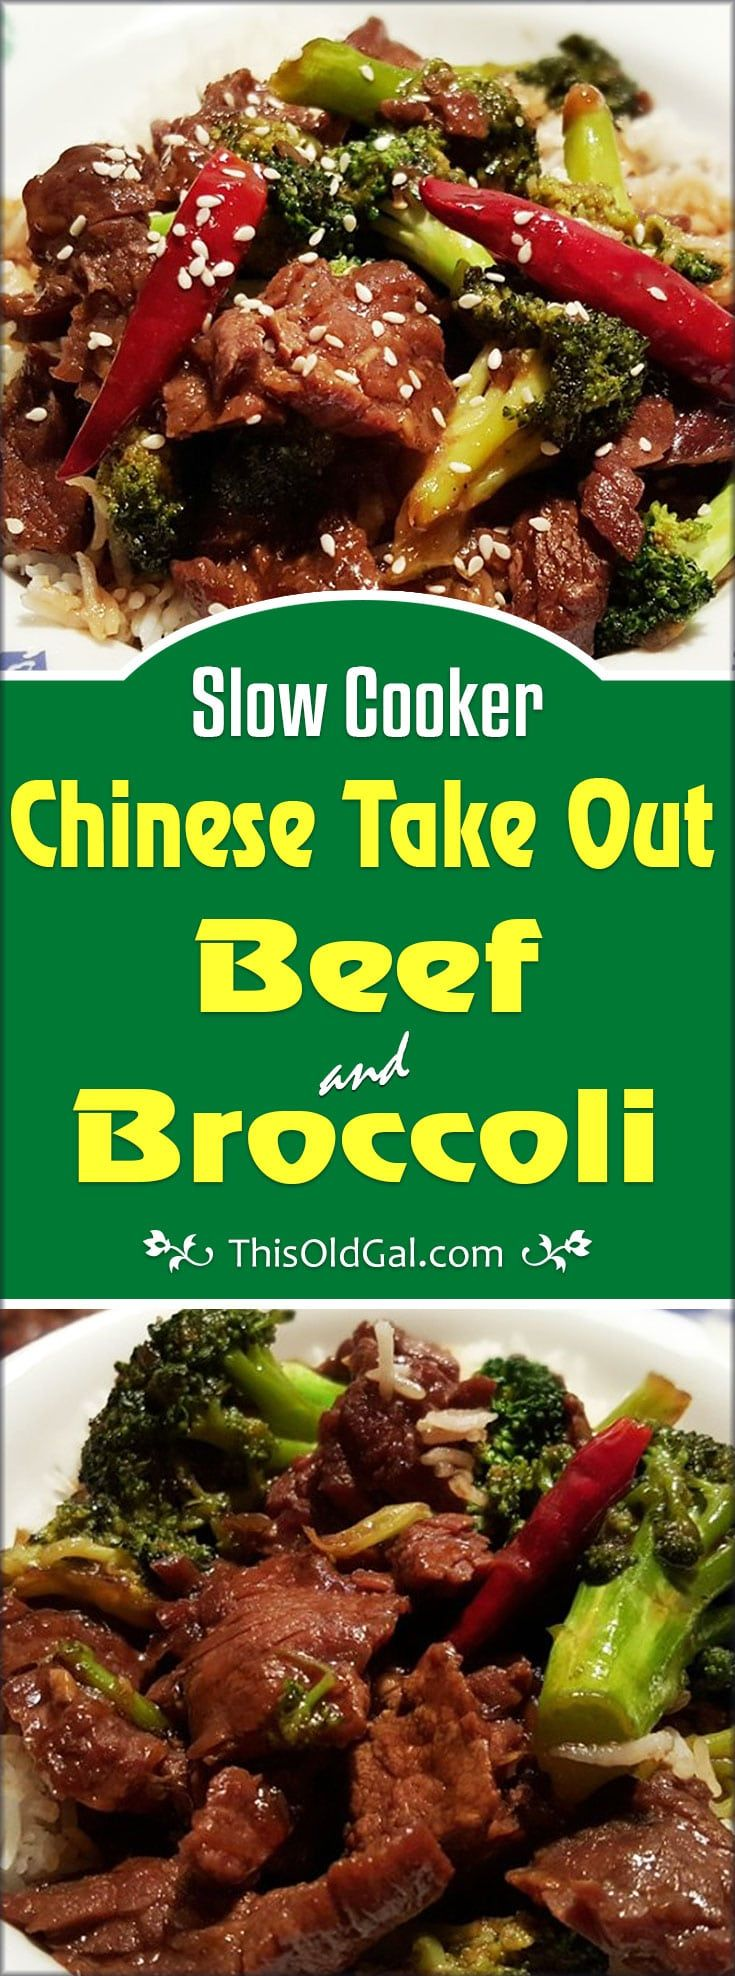 This Slow Cooker Chinese Take Out Beef and Broccoli is easy on your wallet and gives you free time to take care of the kids and the house. via @thisoldgalcooks